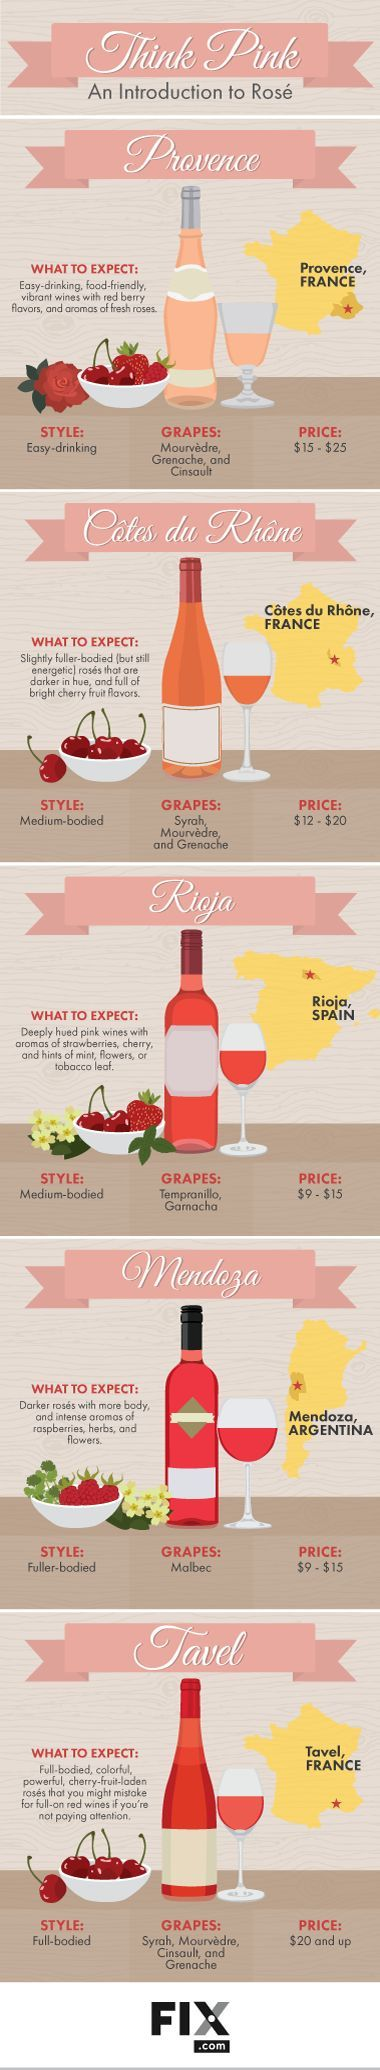 Learn everything you need to know about rosé with this complete guide to a complex and misunderstood wine!